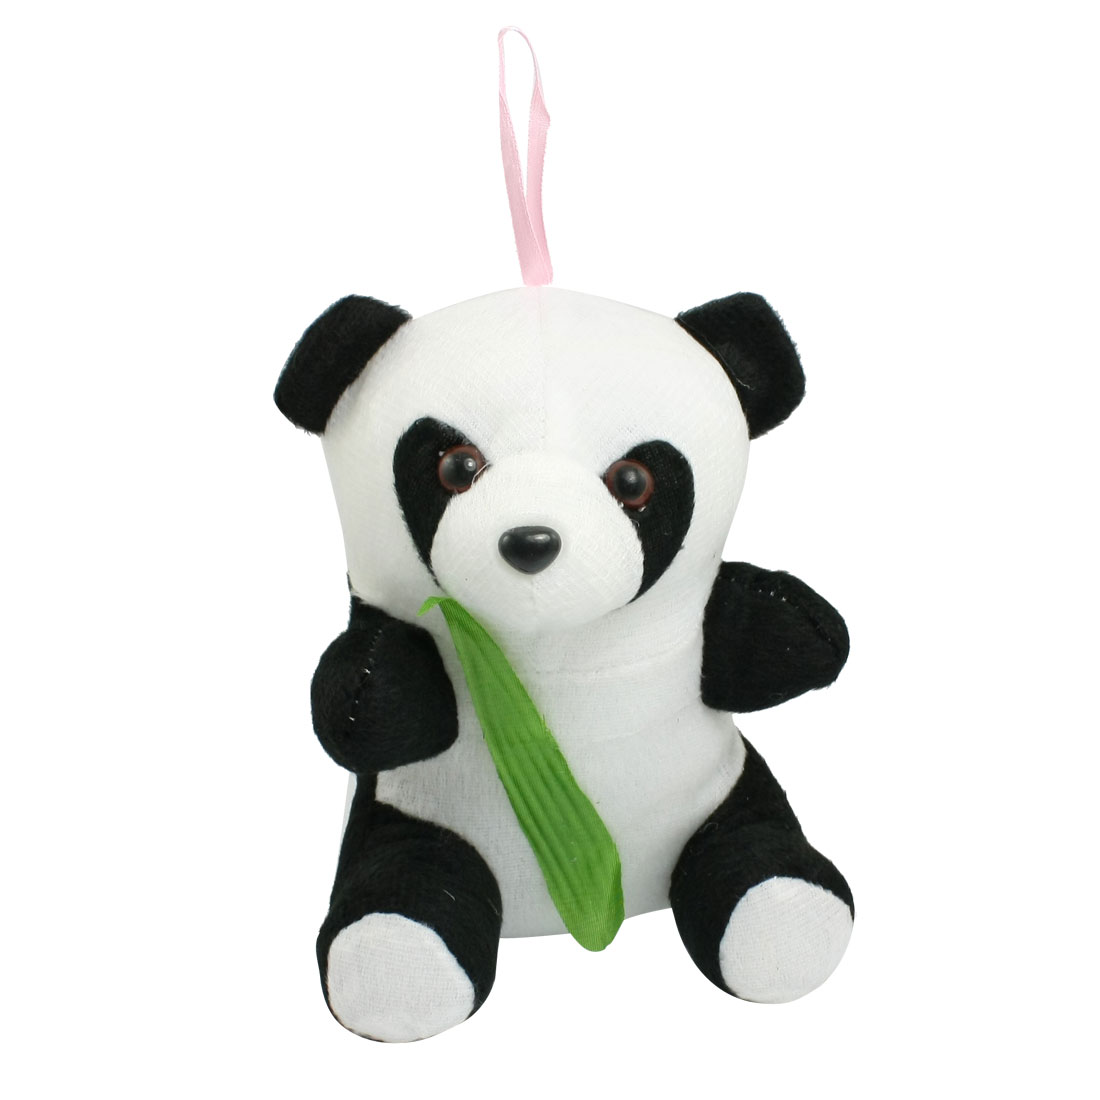 White Black Stuffed Cutton Green Leaf Decor Fleece Panda Doll Toy